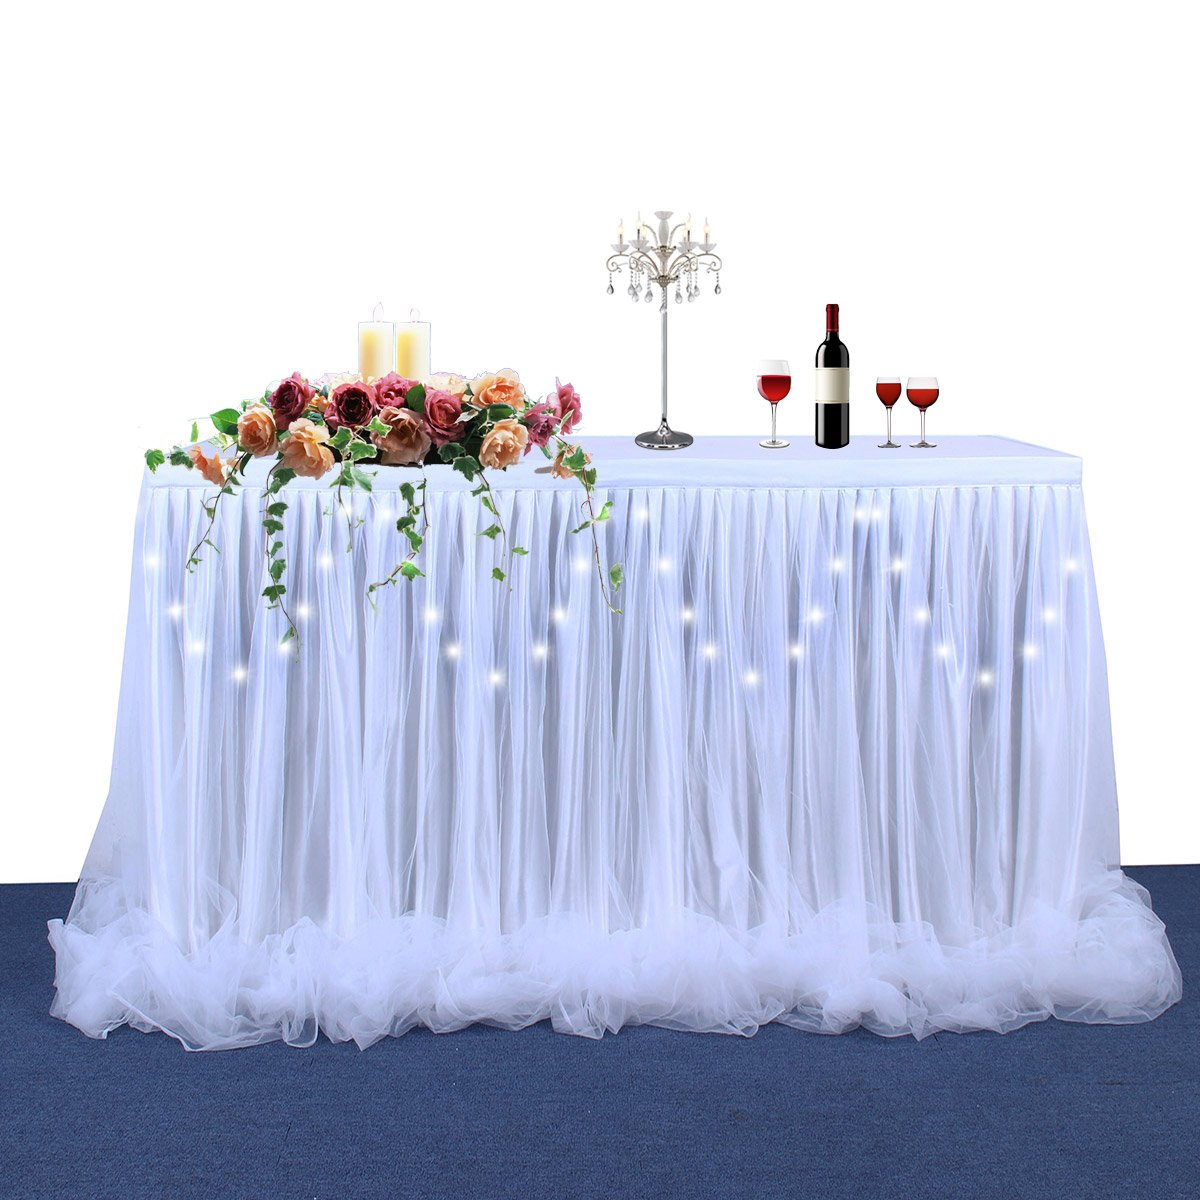 LED Table Skirt 6ft White Tulle Table Skirt Tutu Table Skirting for Rectangle or Round Table for Baby Shower Wedding and Birthday Party Decoration (L6(ft)*H 30in)